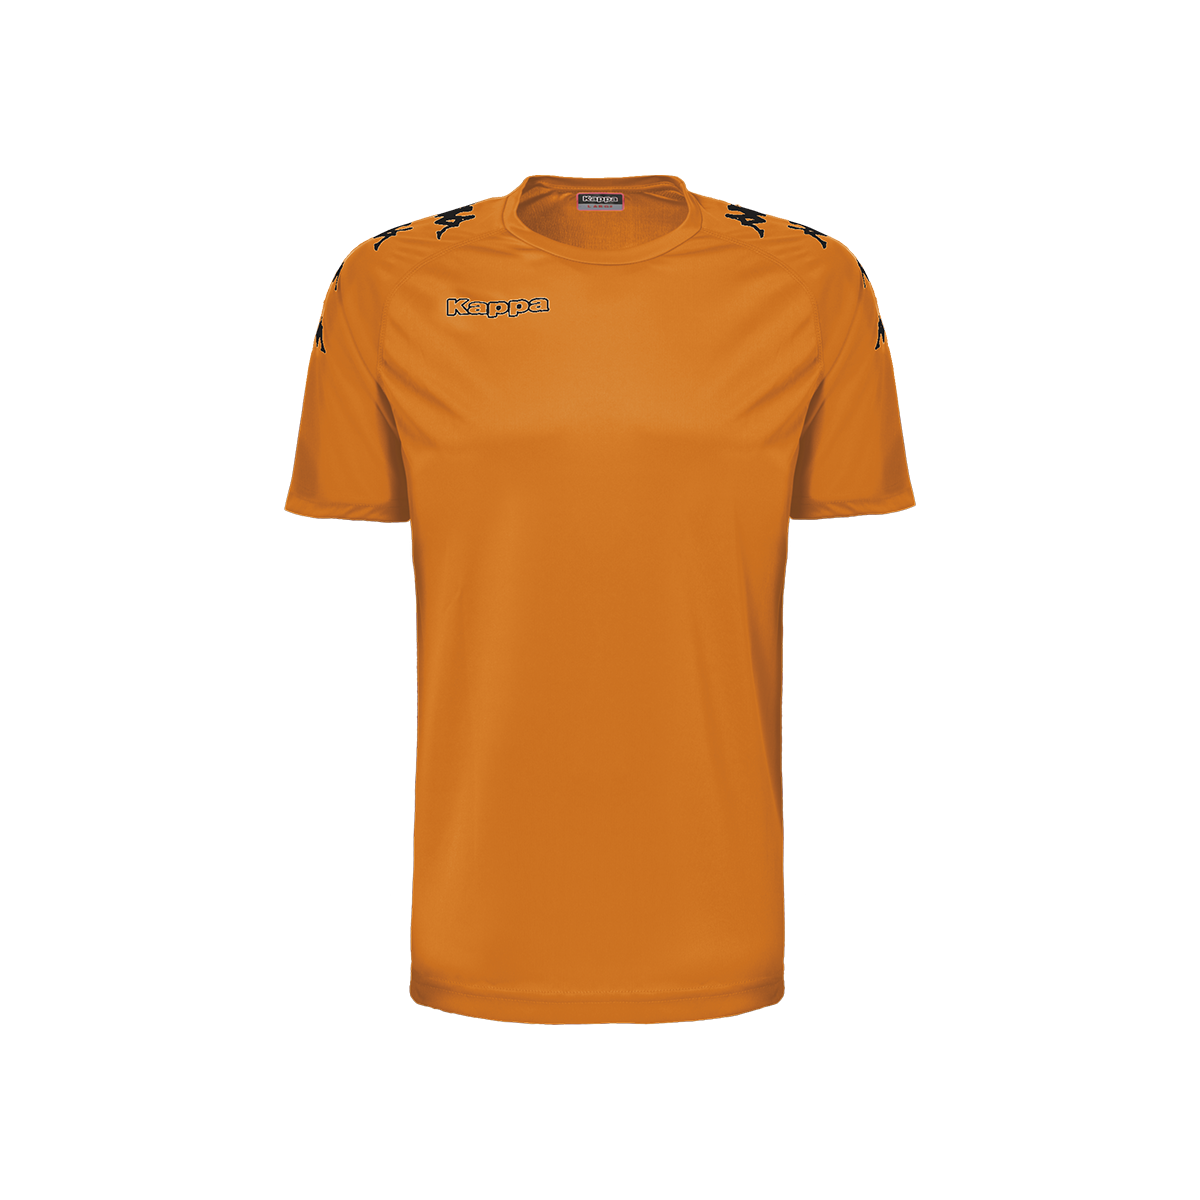 Kappa Castolo Match Shirt SS - Orange